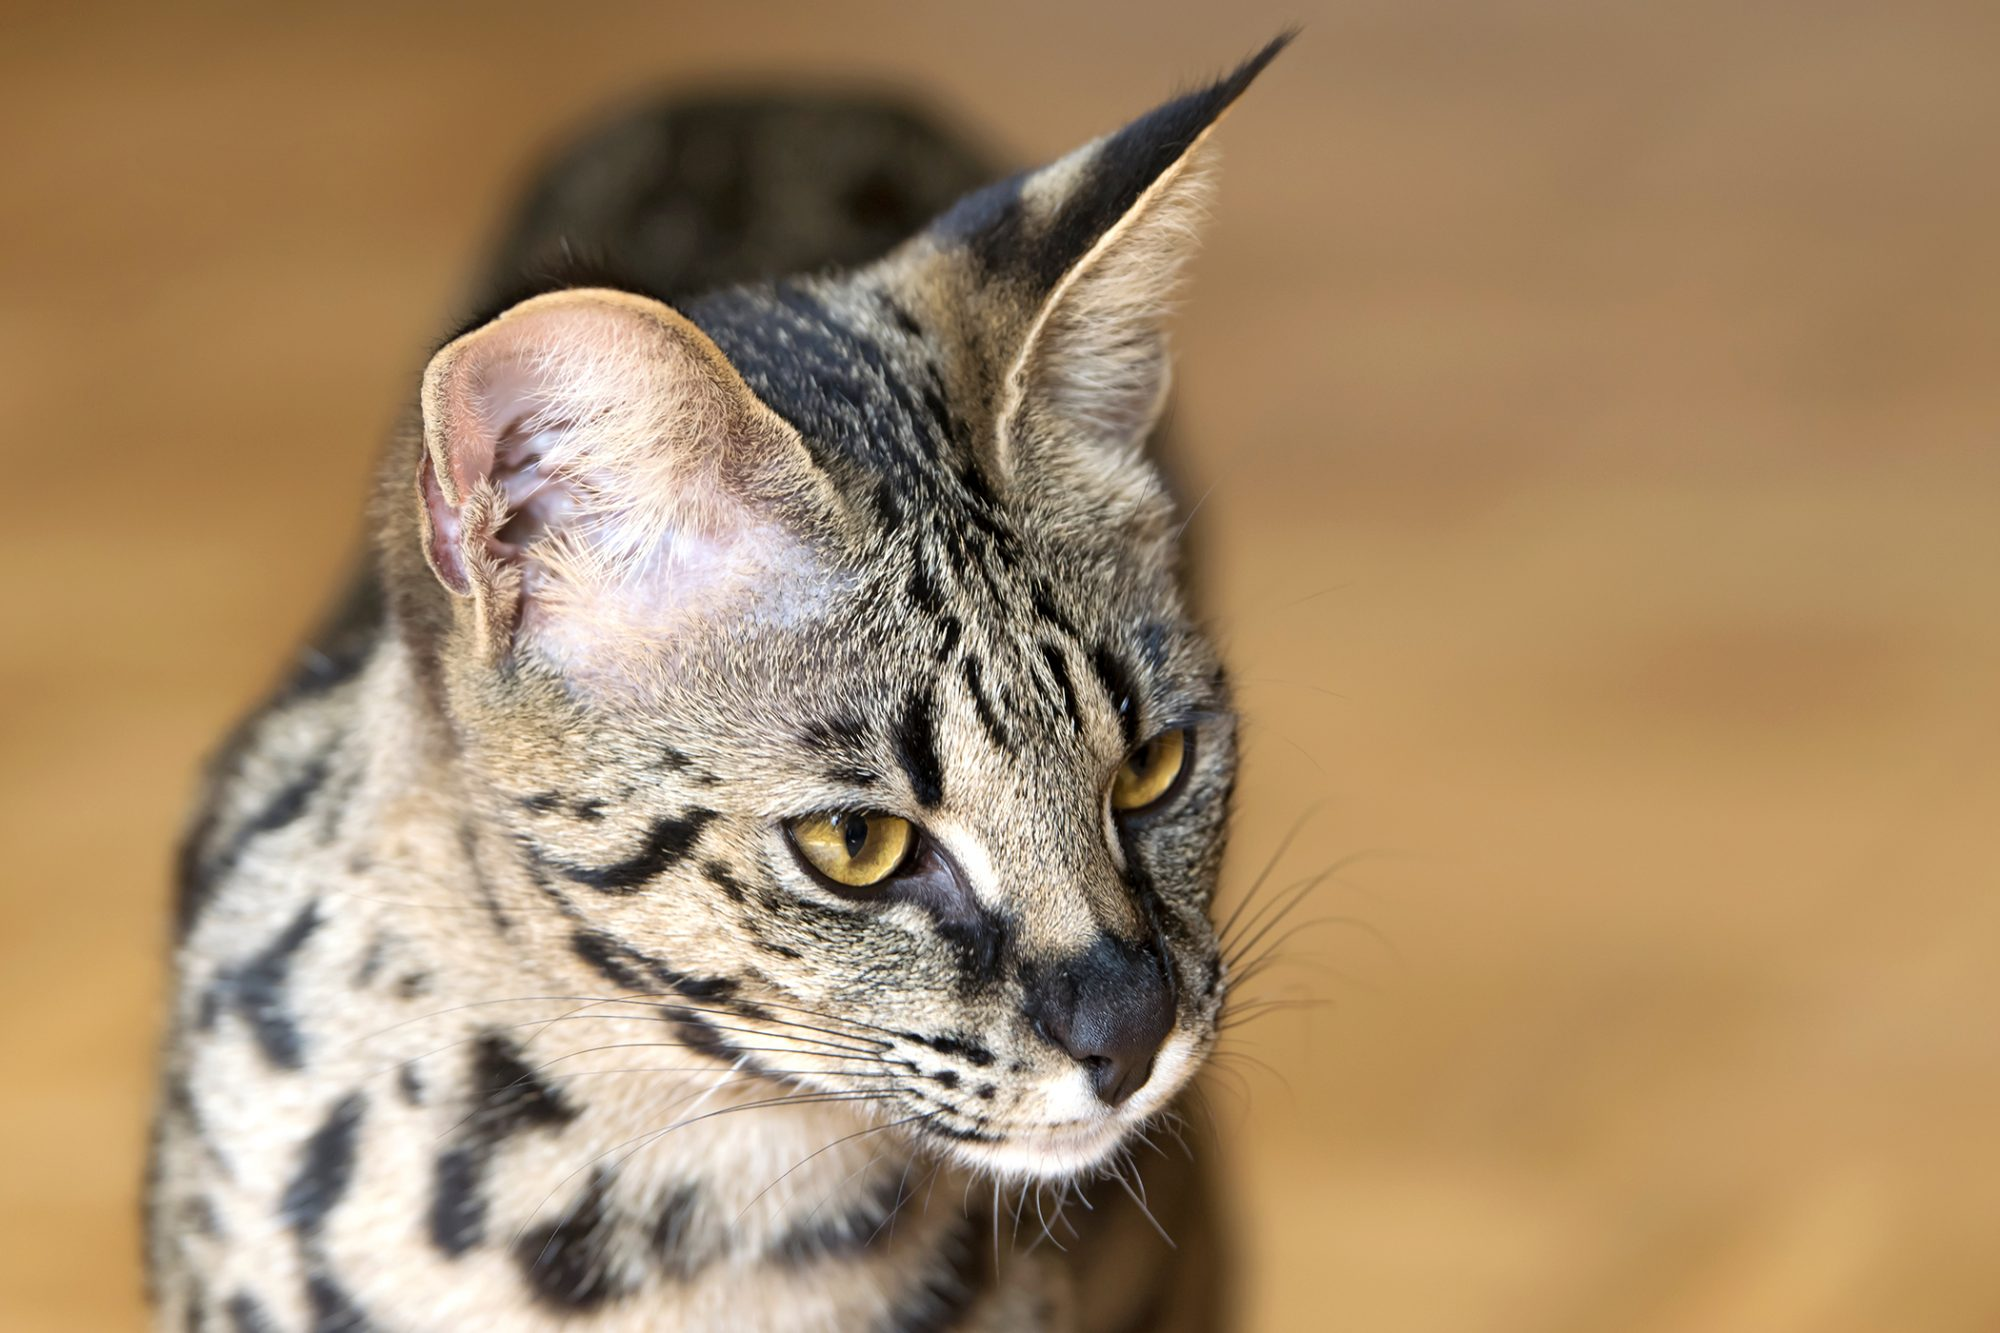 Portrait of Savannah cat with yellow eyes in front of tan background